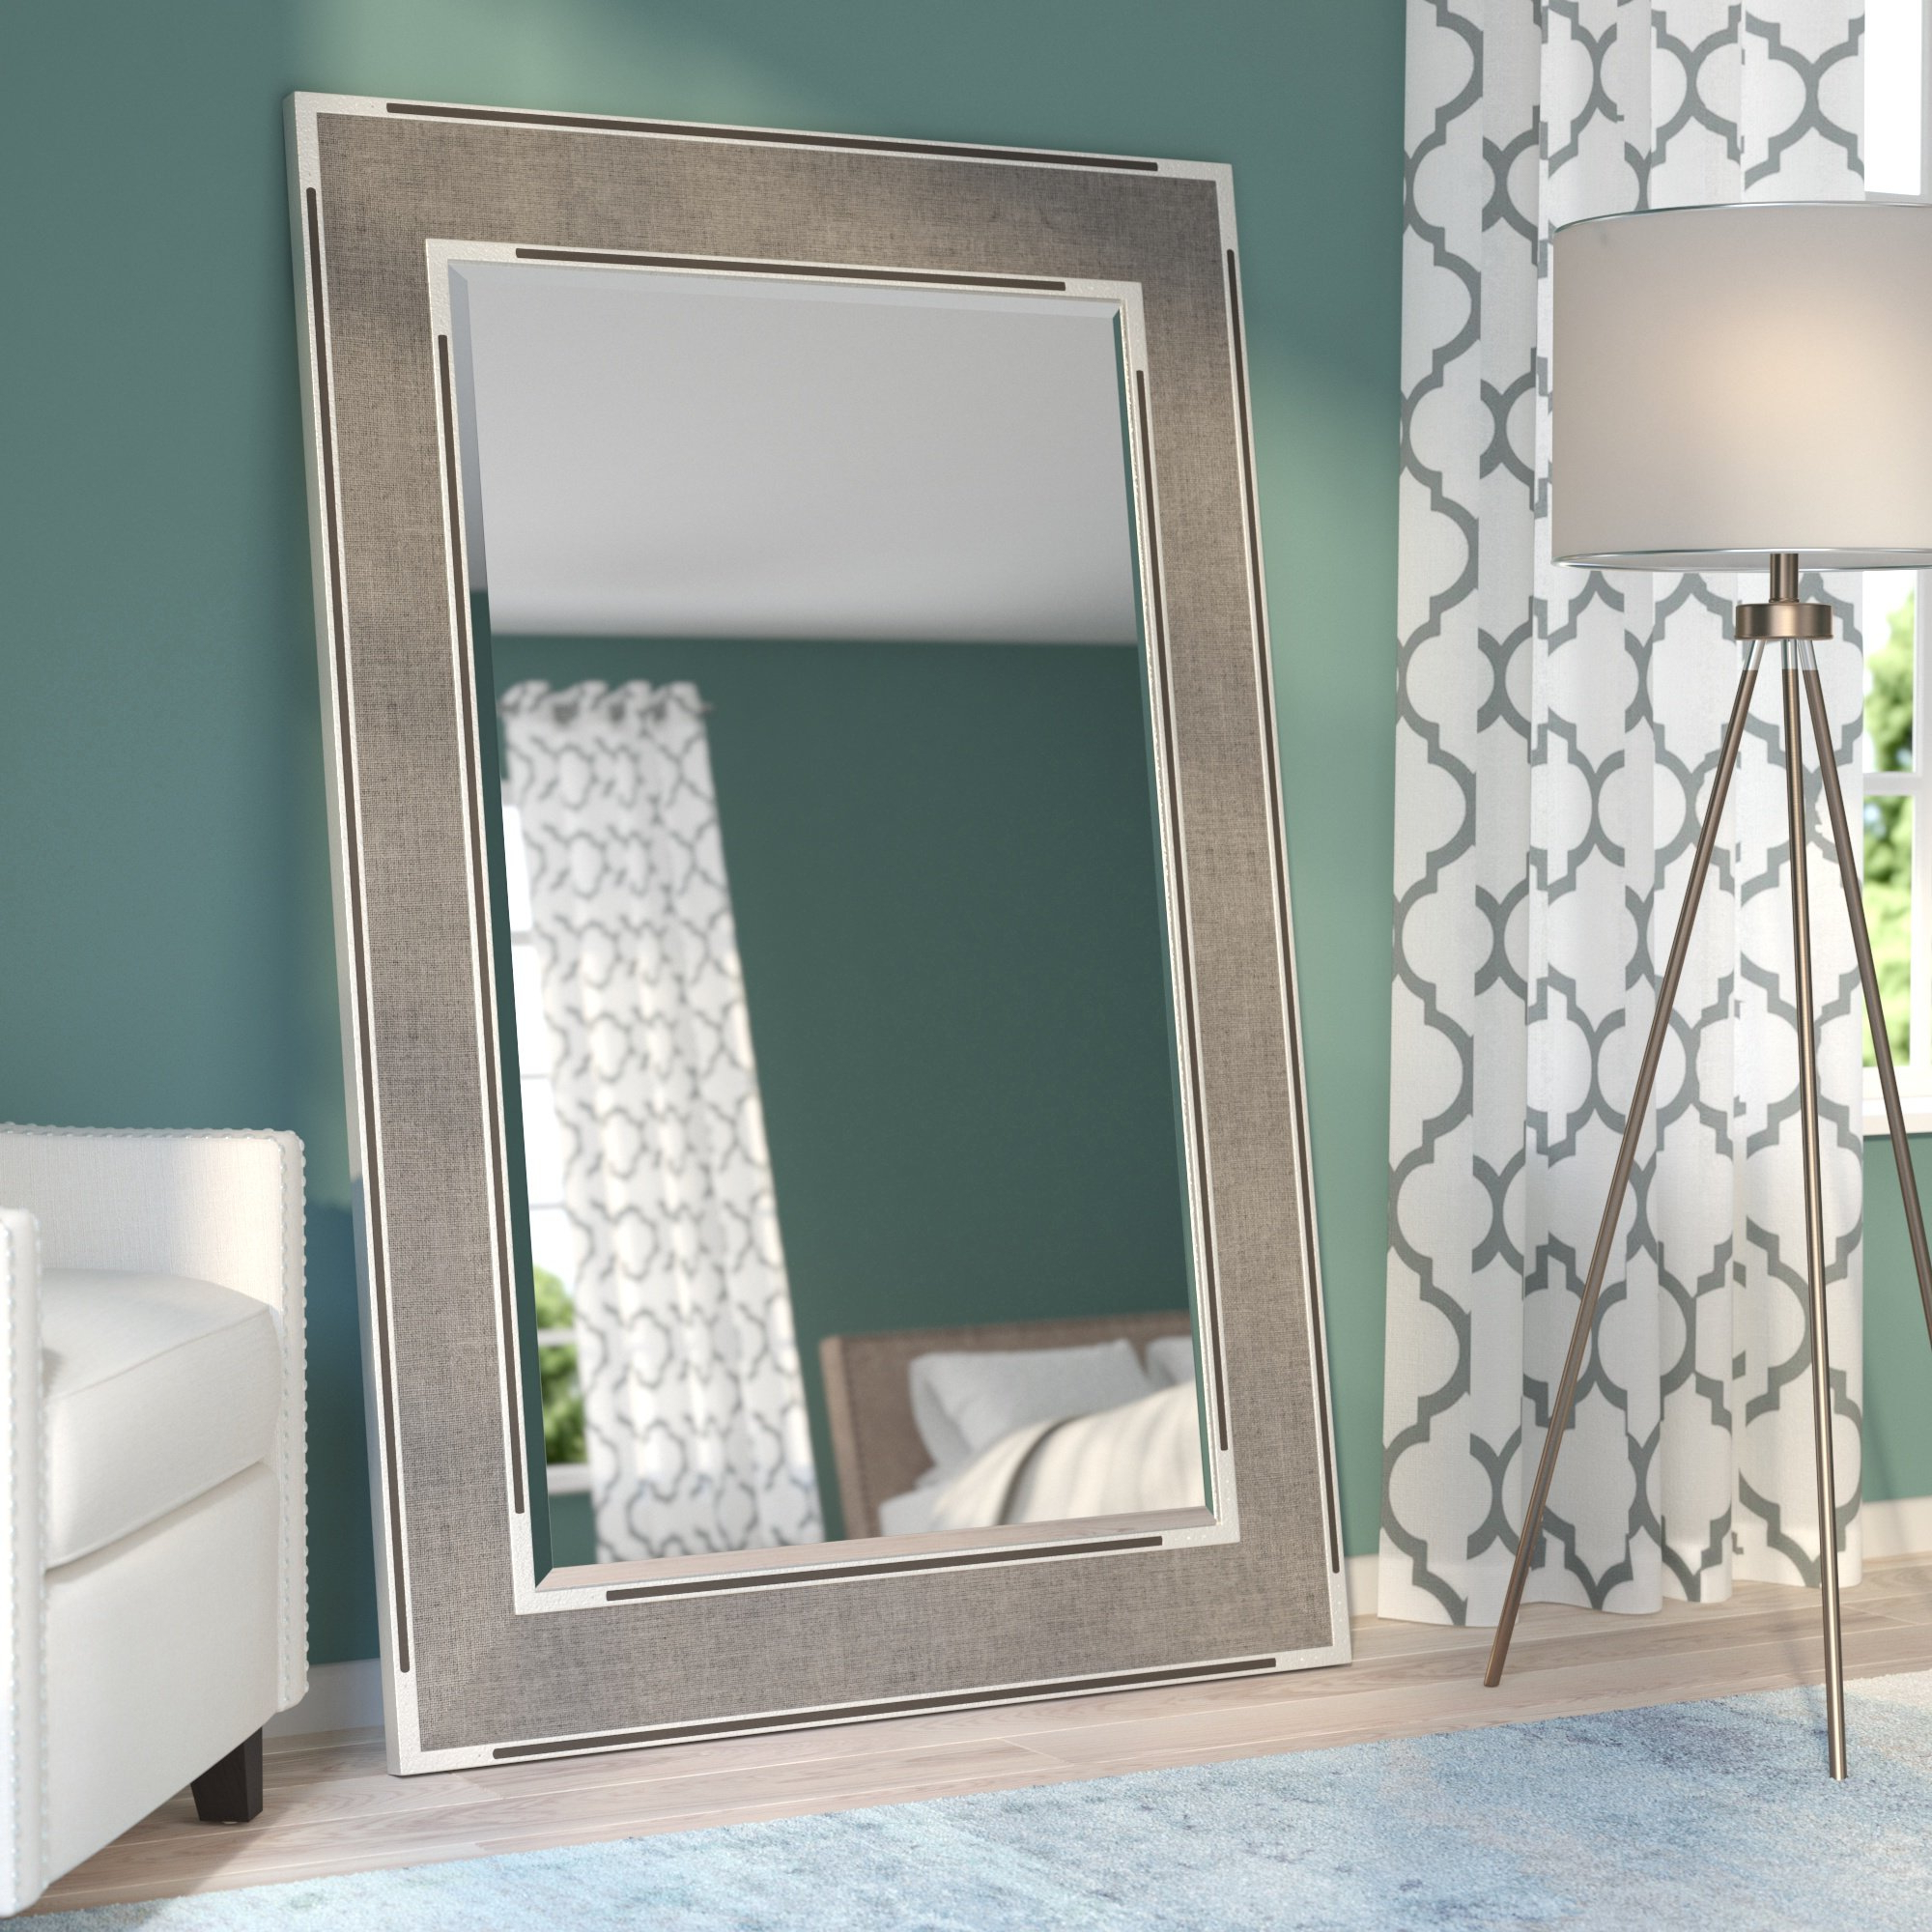 Trendy Brodbeck Oversized Wall Mirror Within Oversized Wall Mirrors (View 1 of 20)